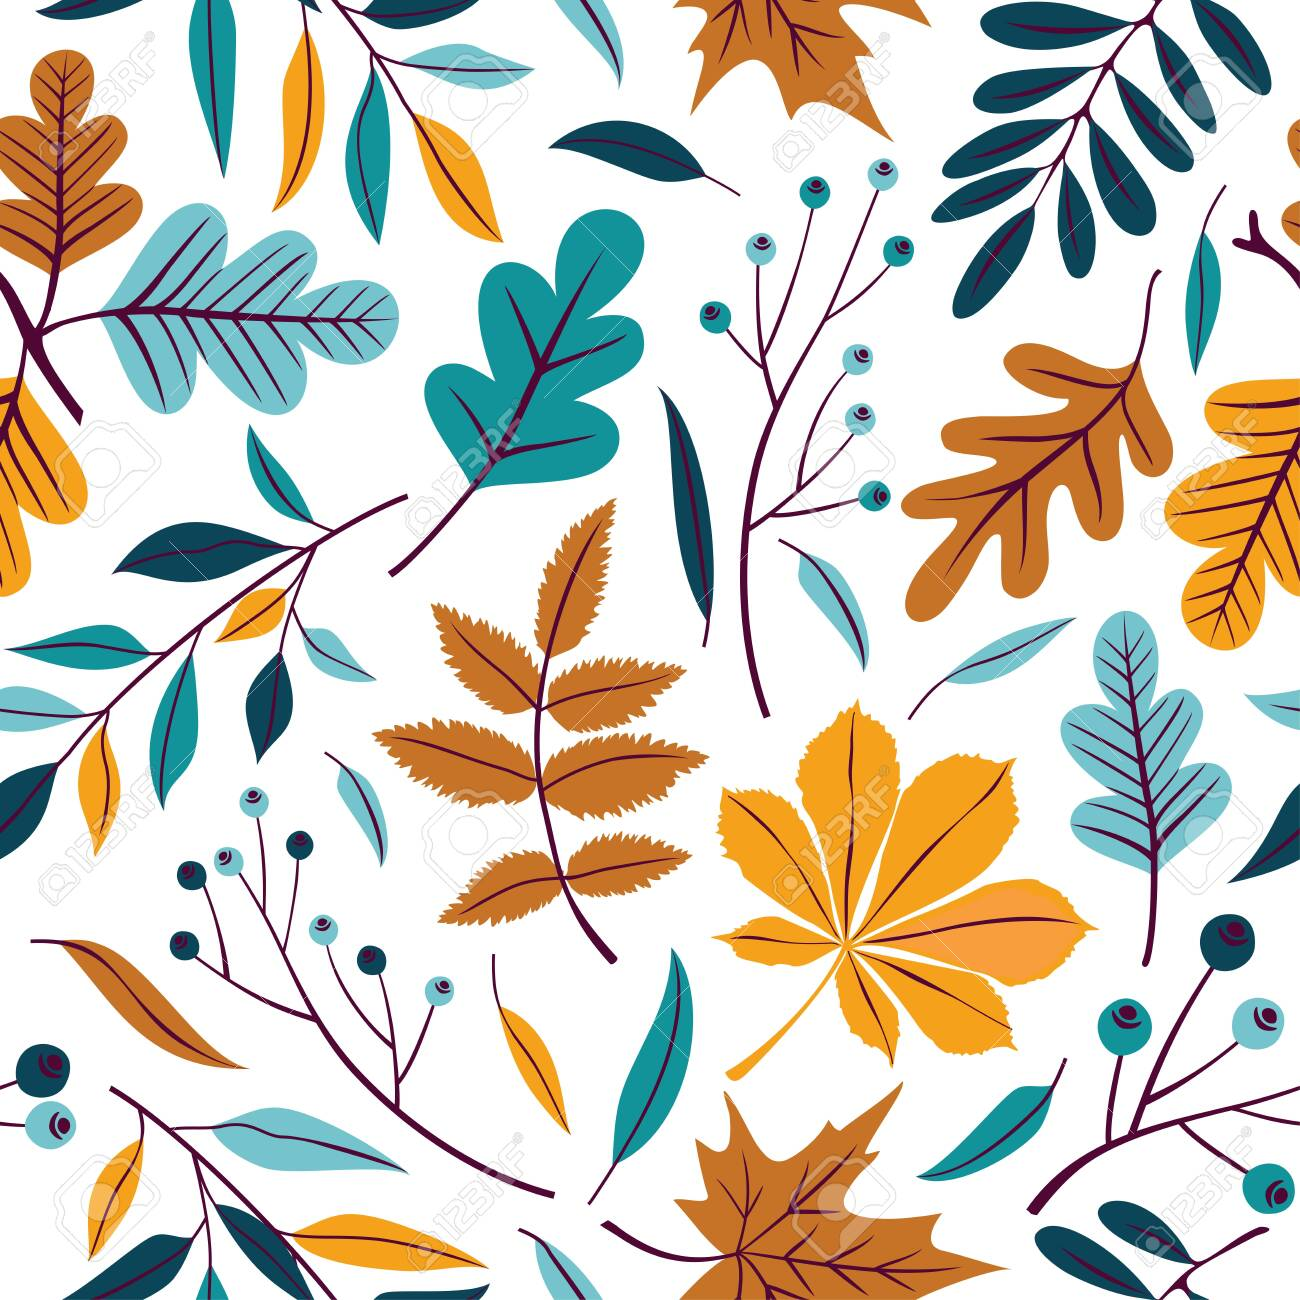 Vector seamless pattern of autumn leaves, branches and berries. - 136818180